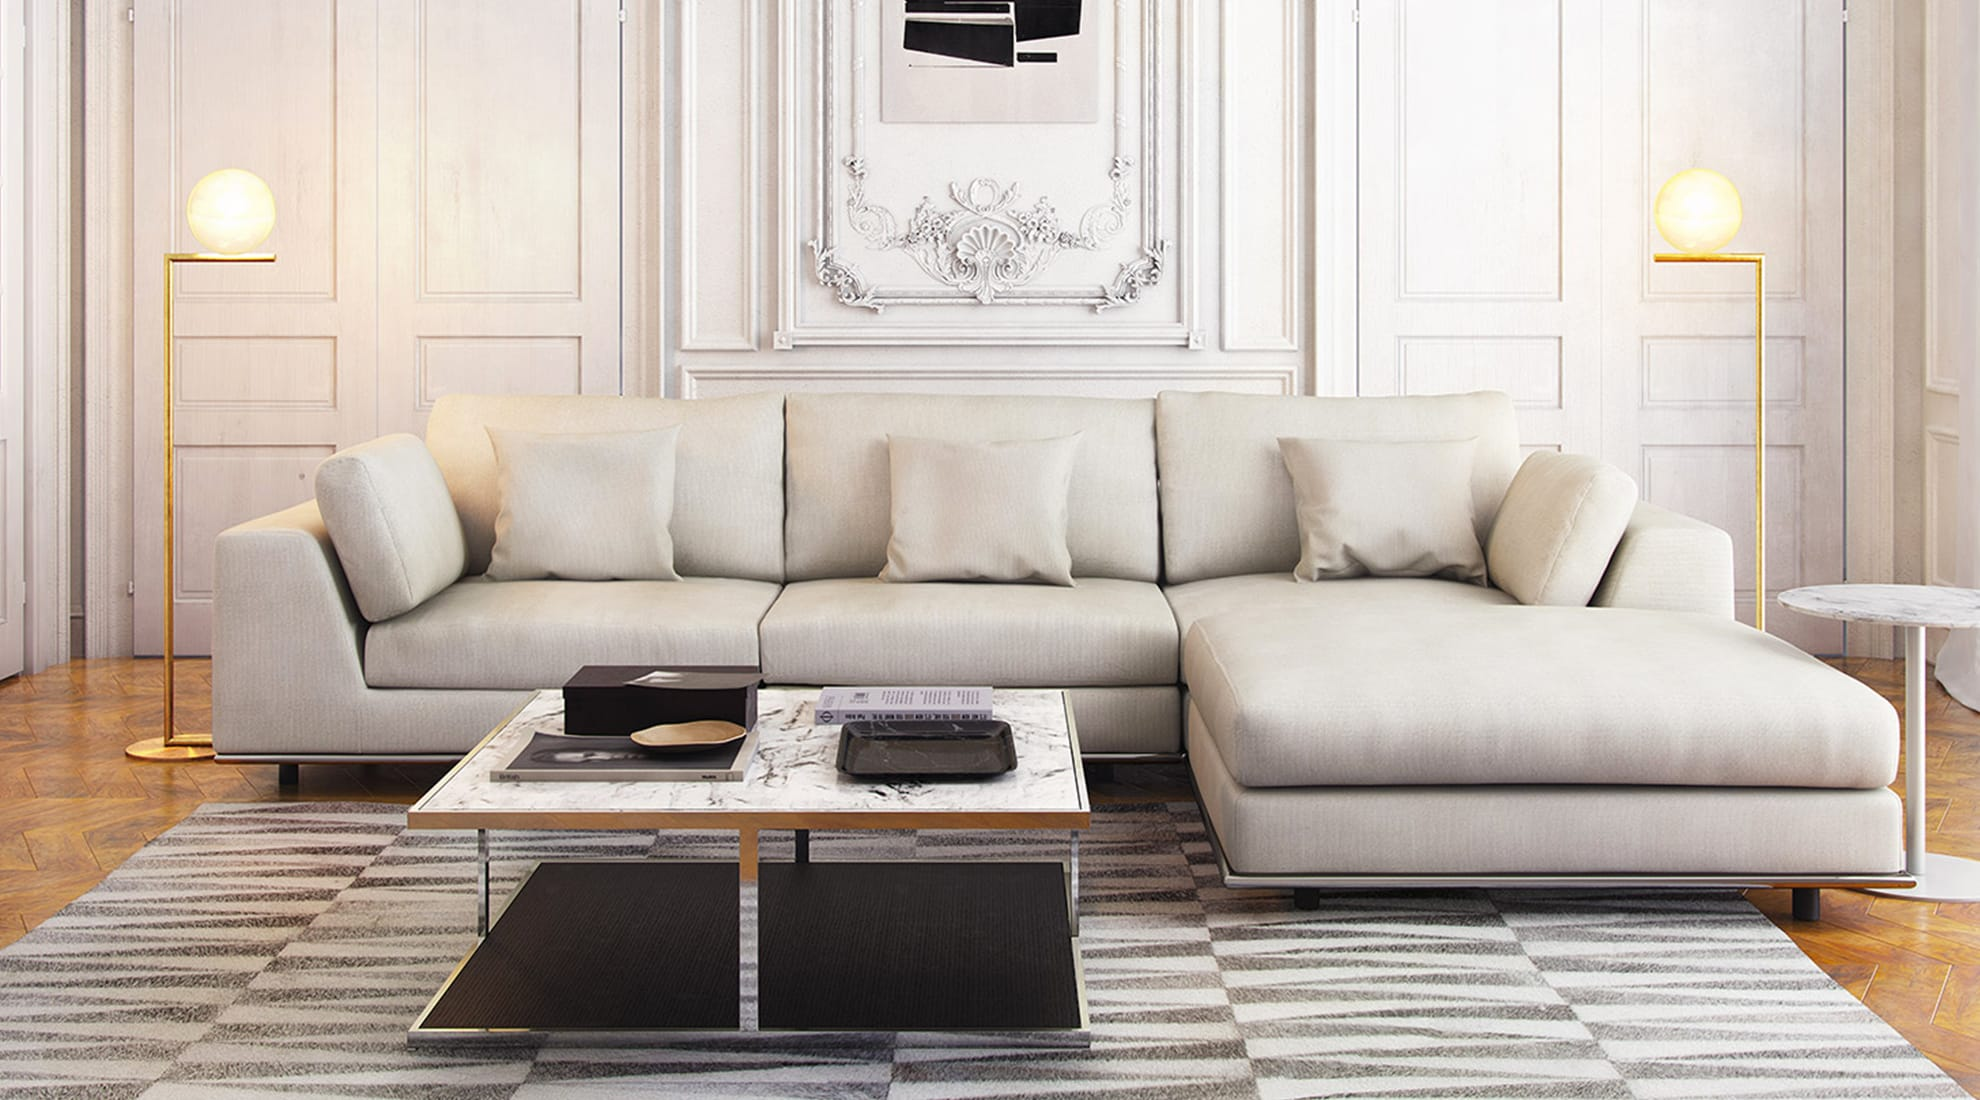 Perry Three Seat Sofa with Ottoman by Modloft and IC Floor Lamp by FLOS